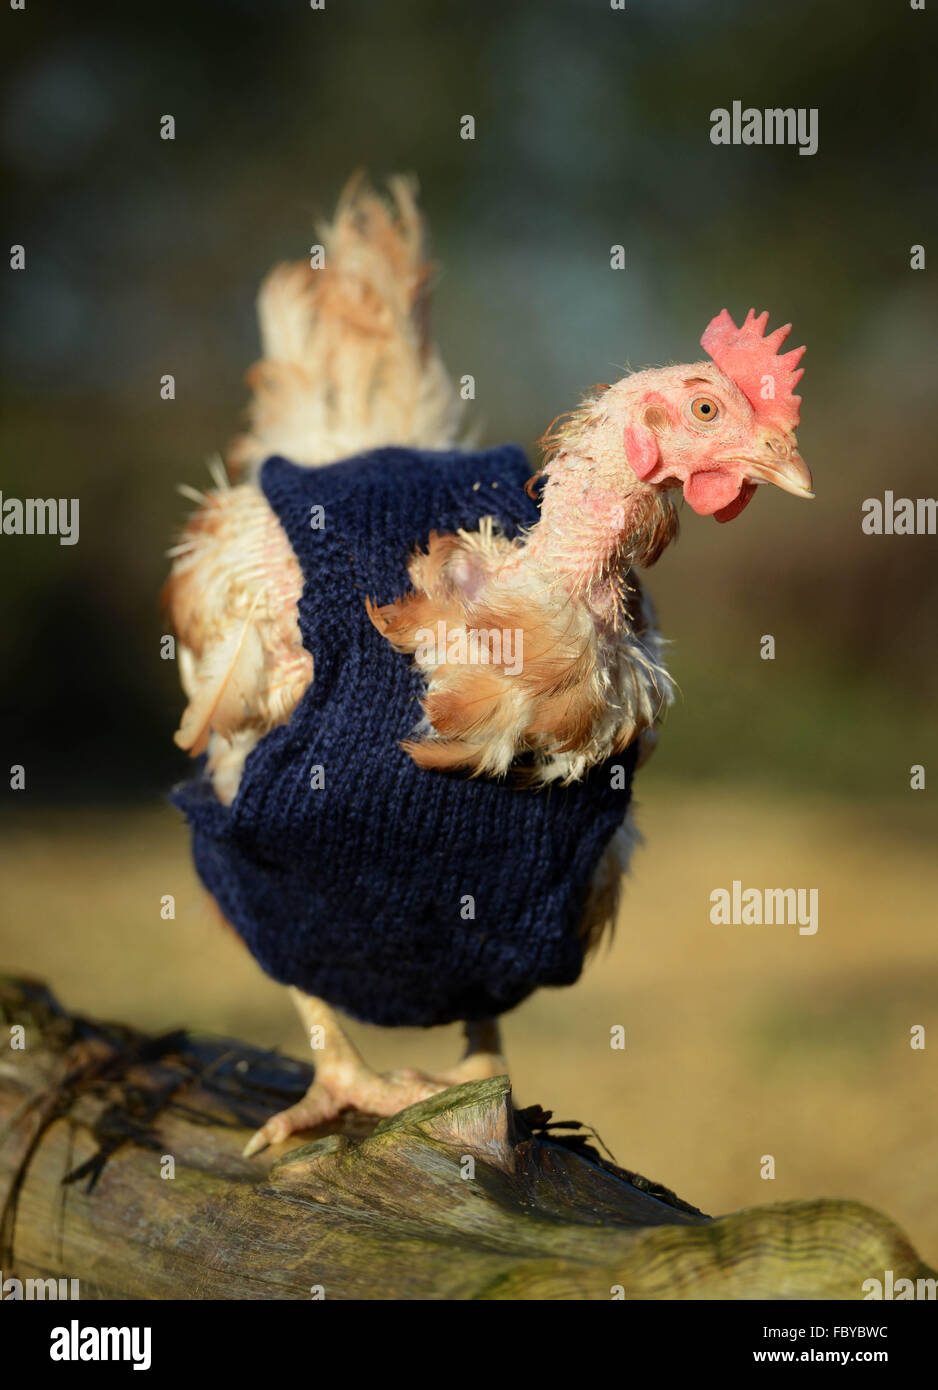 Ex battery hens with knitted woollen jumpers - Stock Image